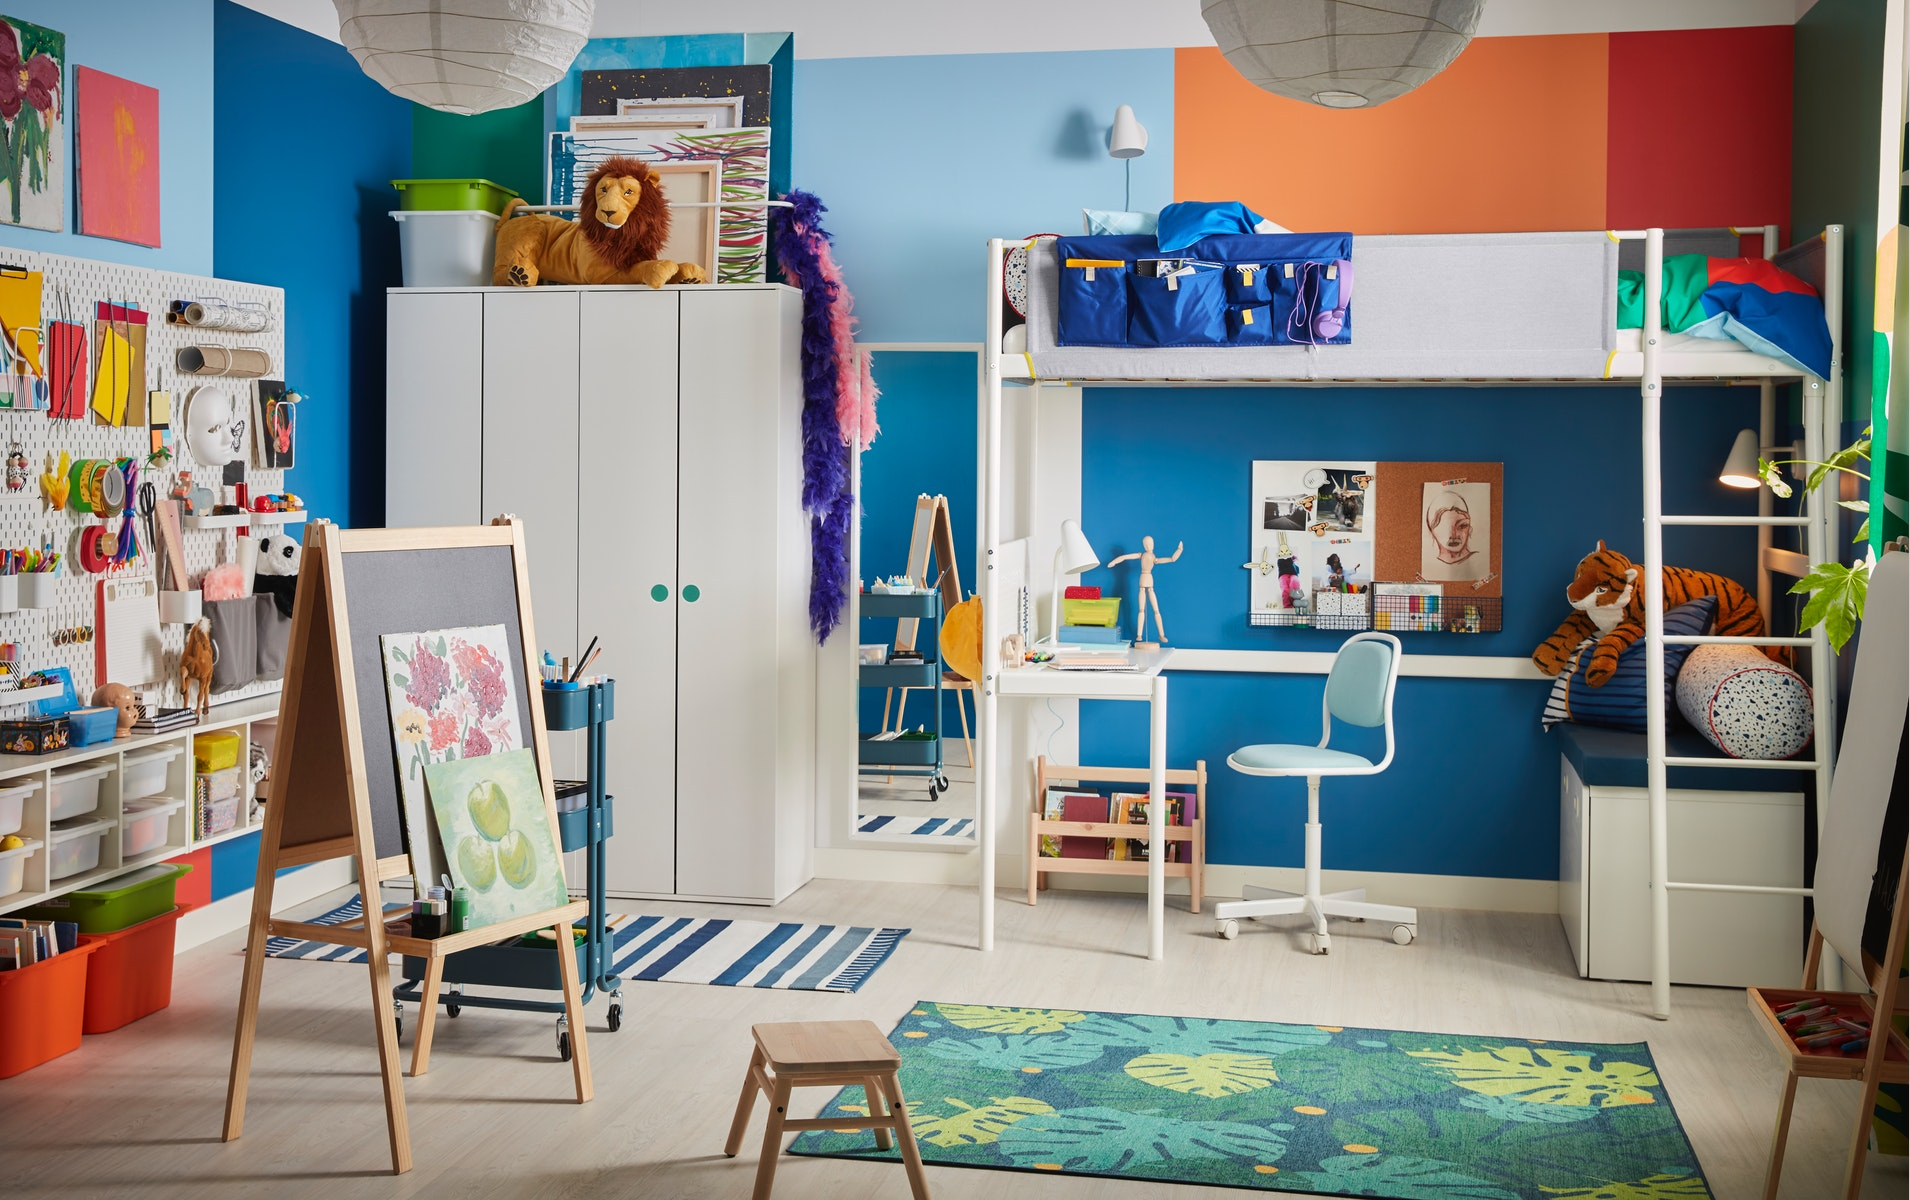 Every little painter's children's room dream